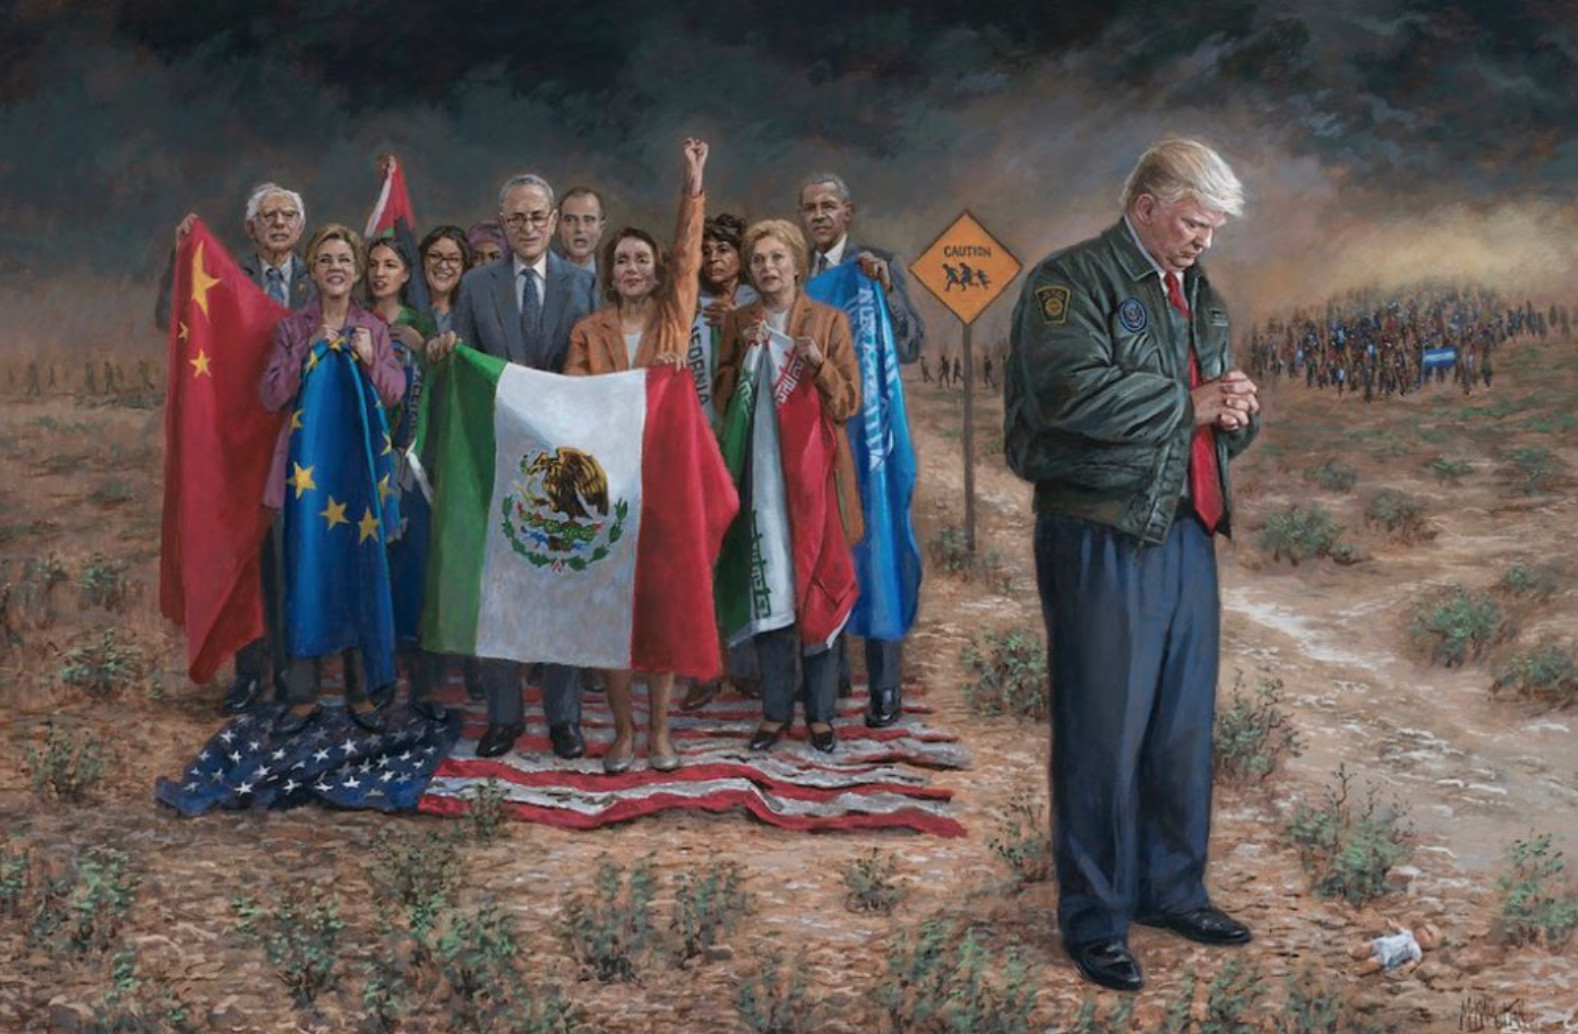 Jon McNaughton paints Trump threatened by a crowd of Democrats carrying Mexican, European, and Soviet flags, while they stand on the US flag.